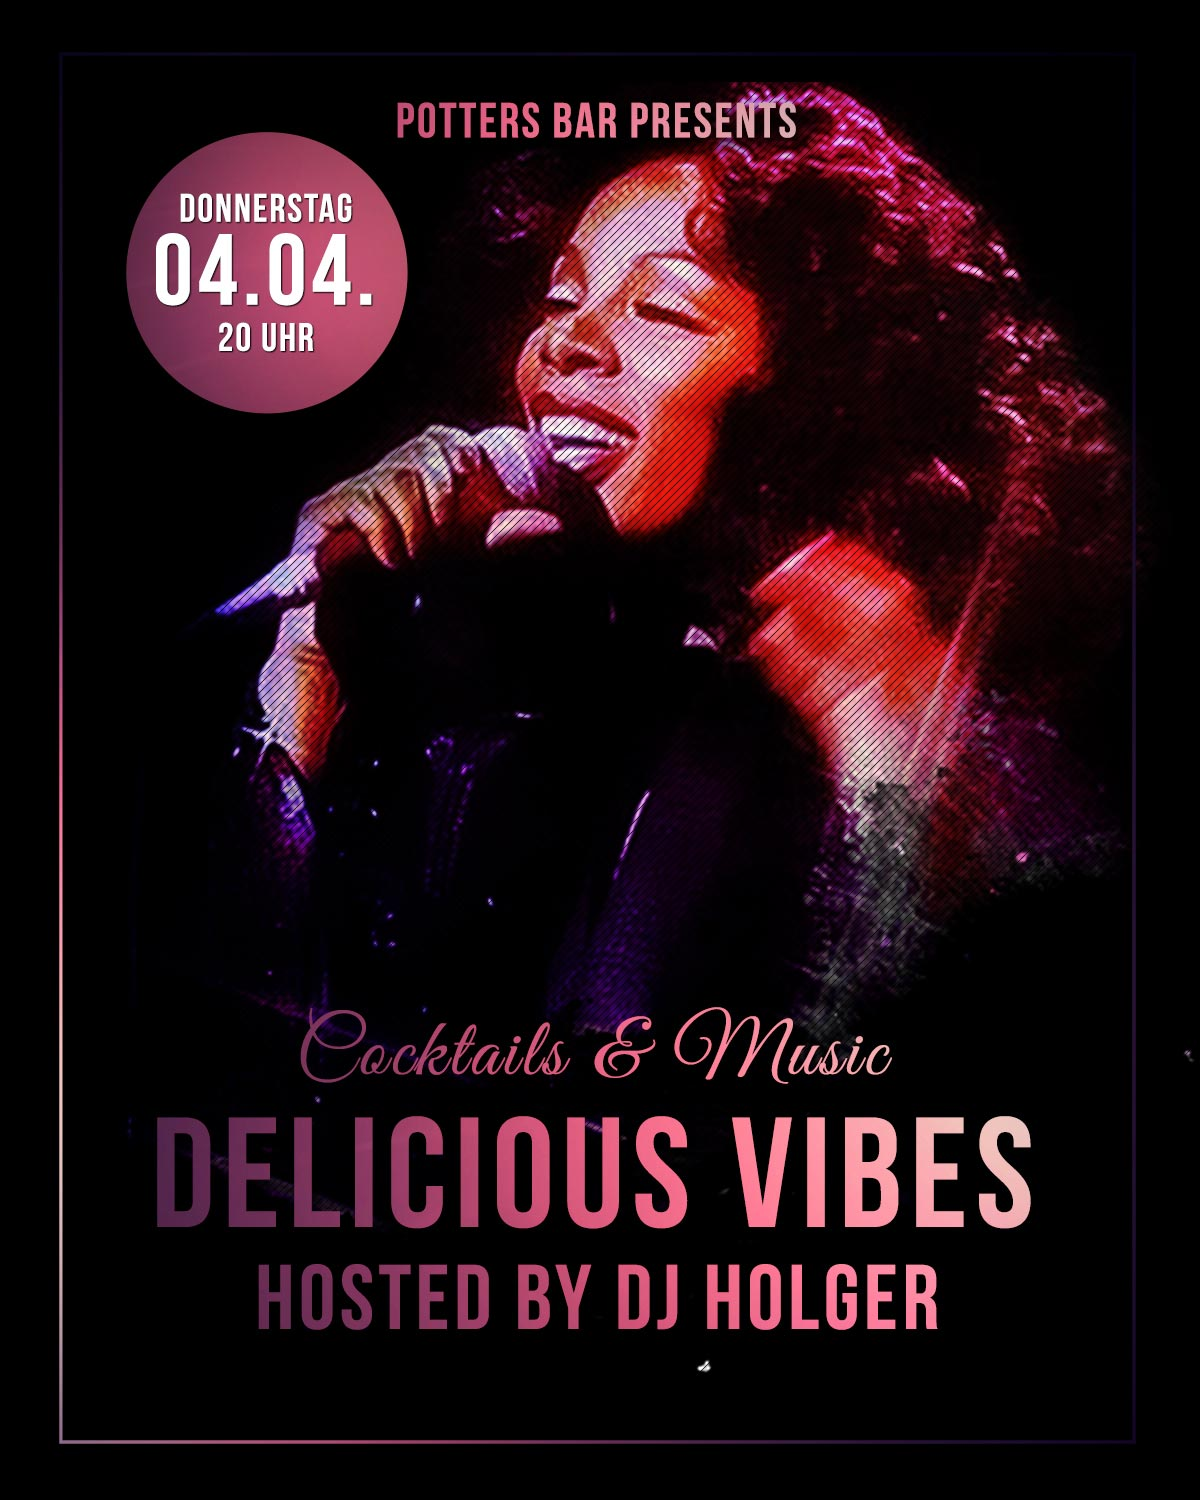 Potters Bar Hildesheim Event Delicious Vibes